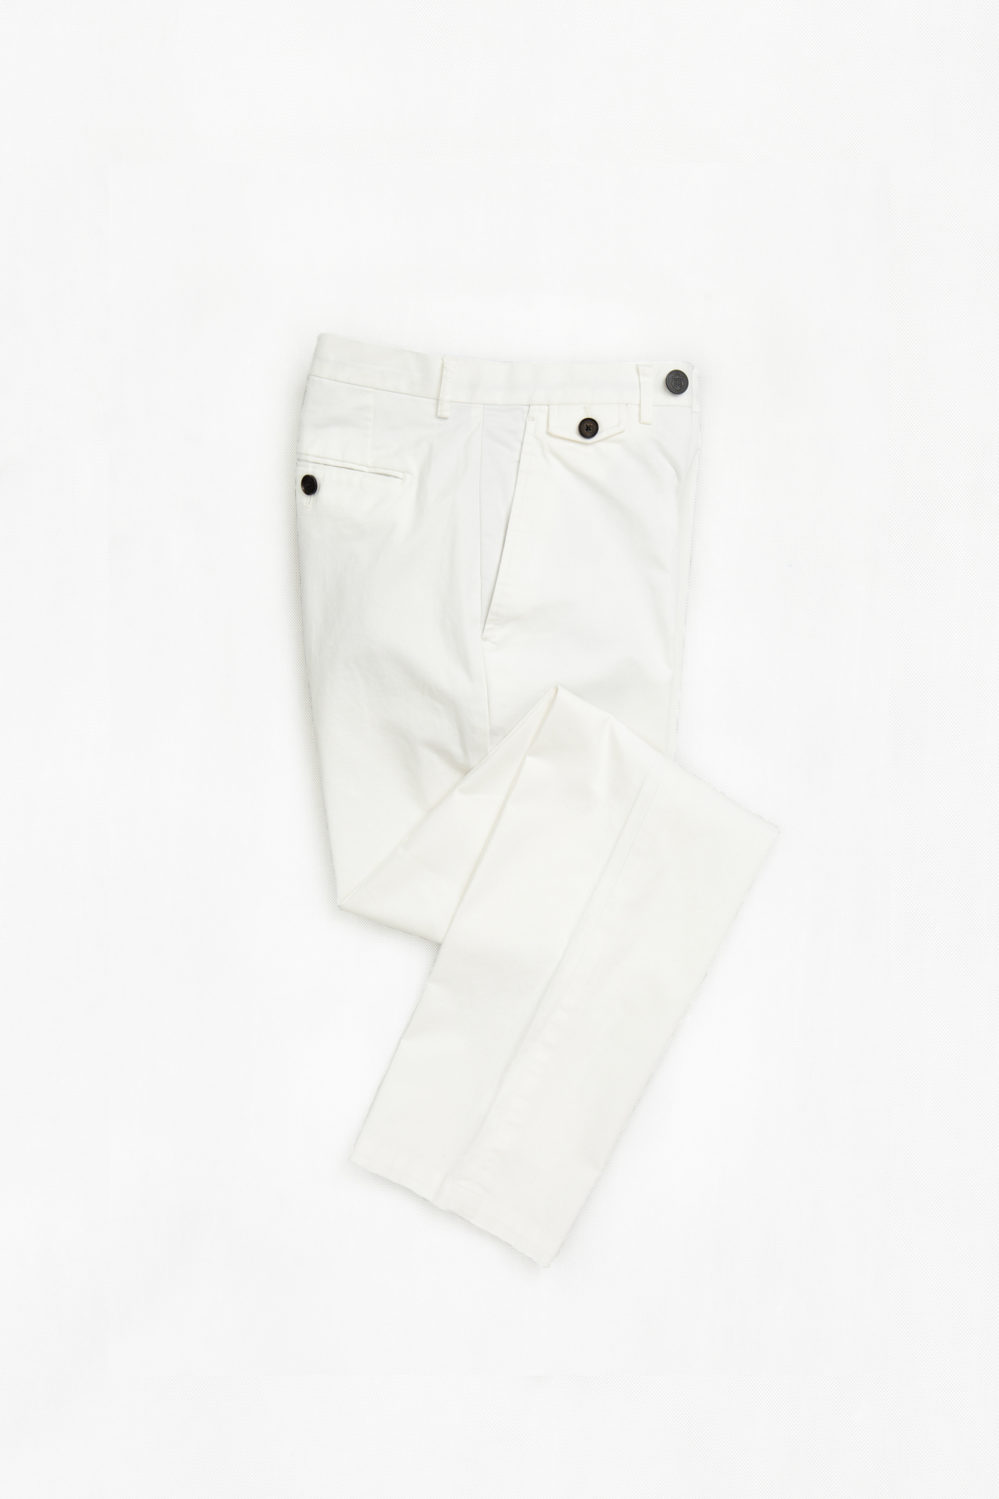 Flat lay of white chinos, custom tailored by Senszio to each individual's size and preferences